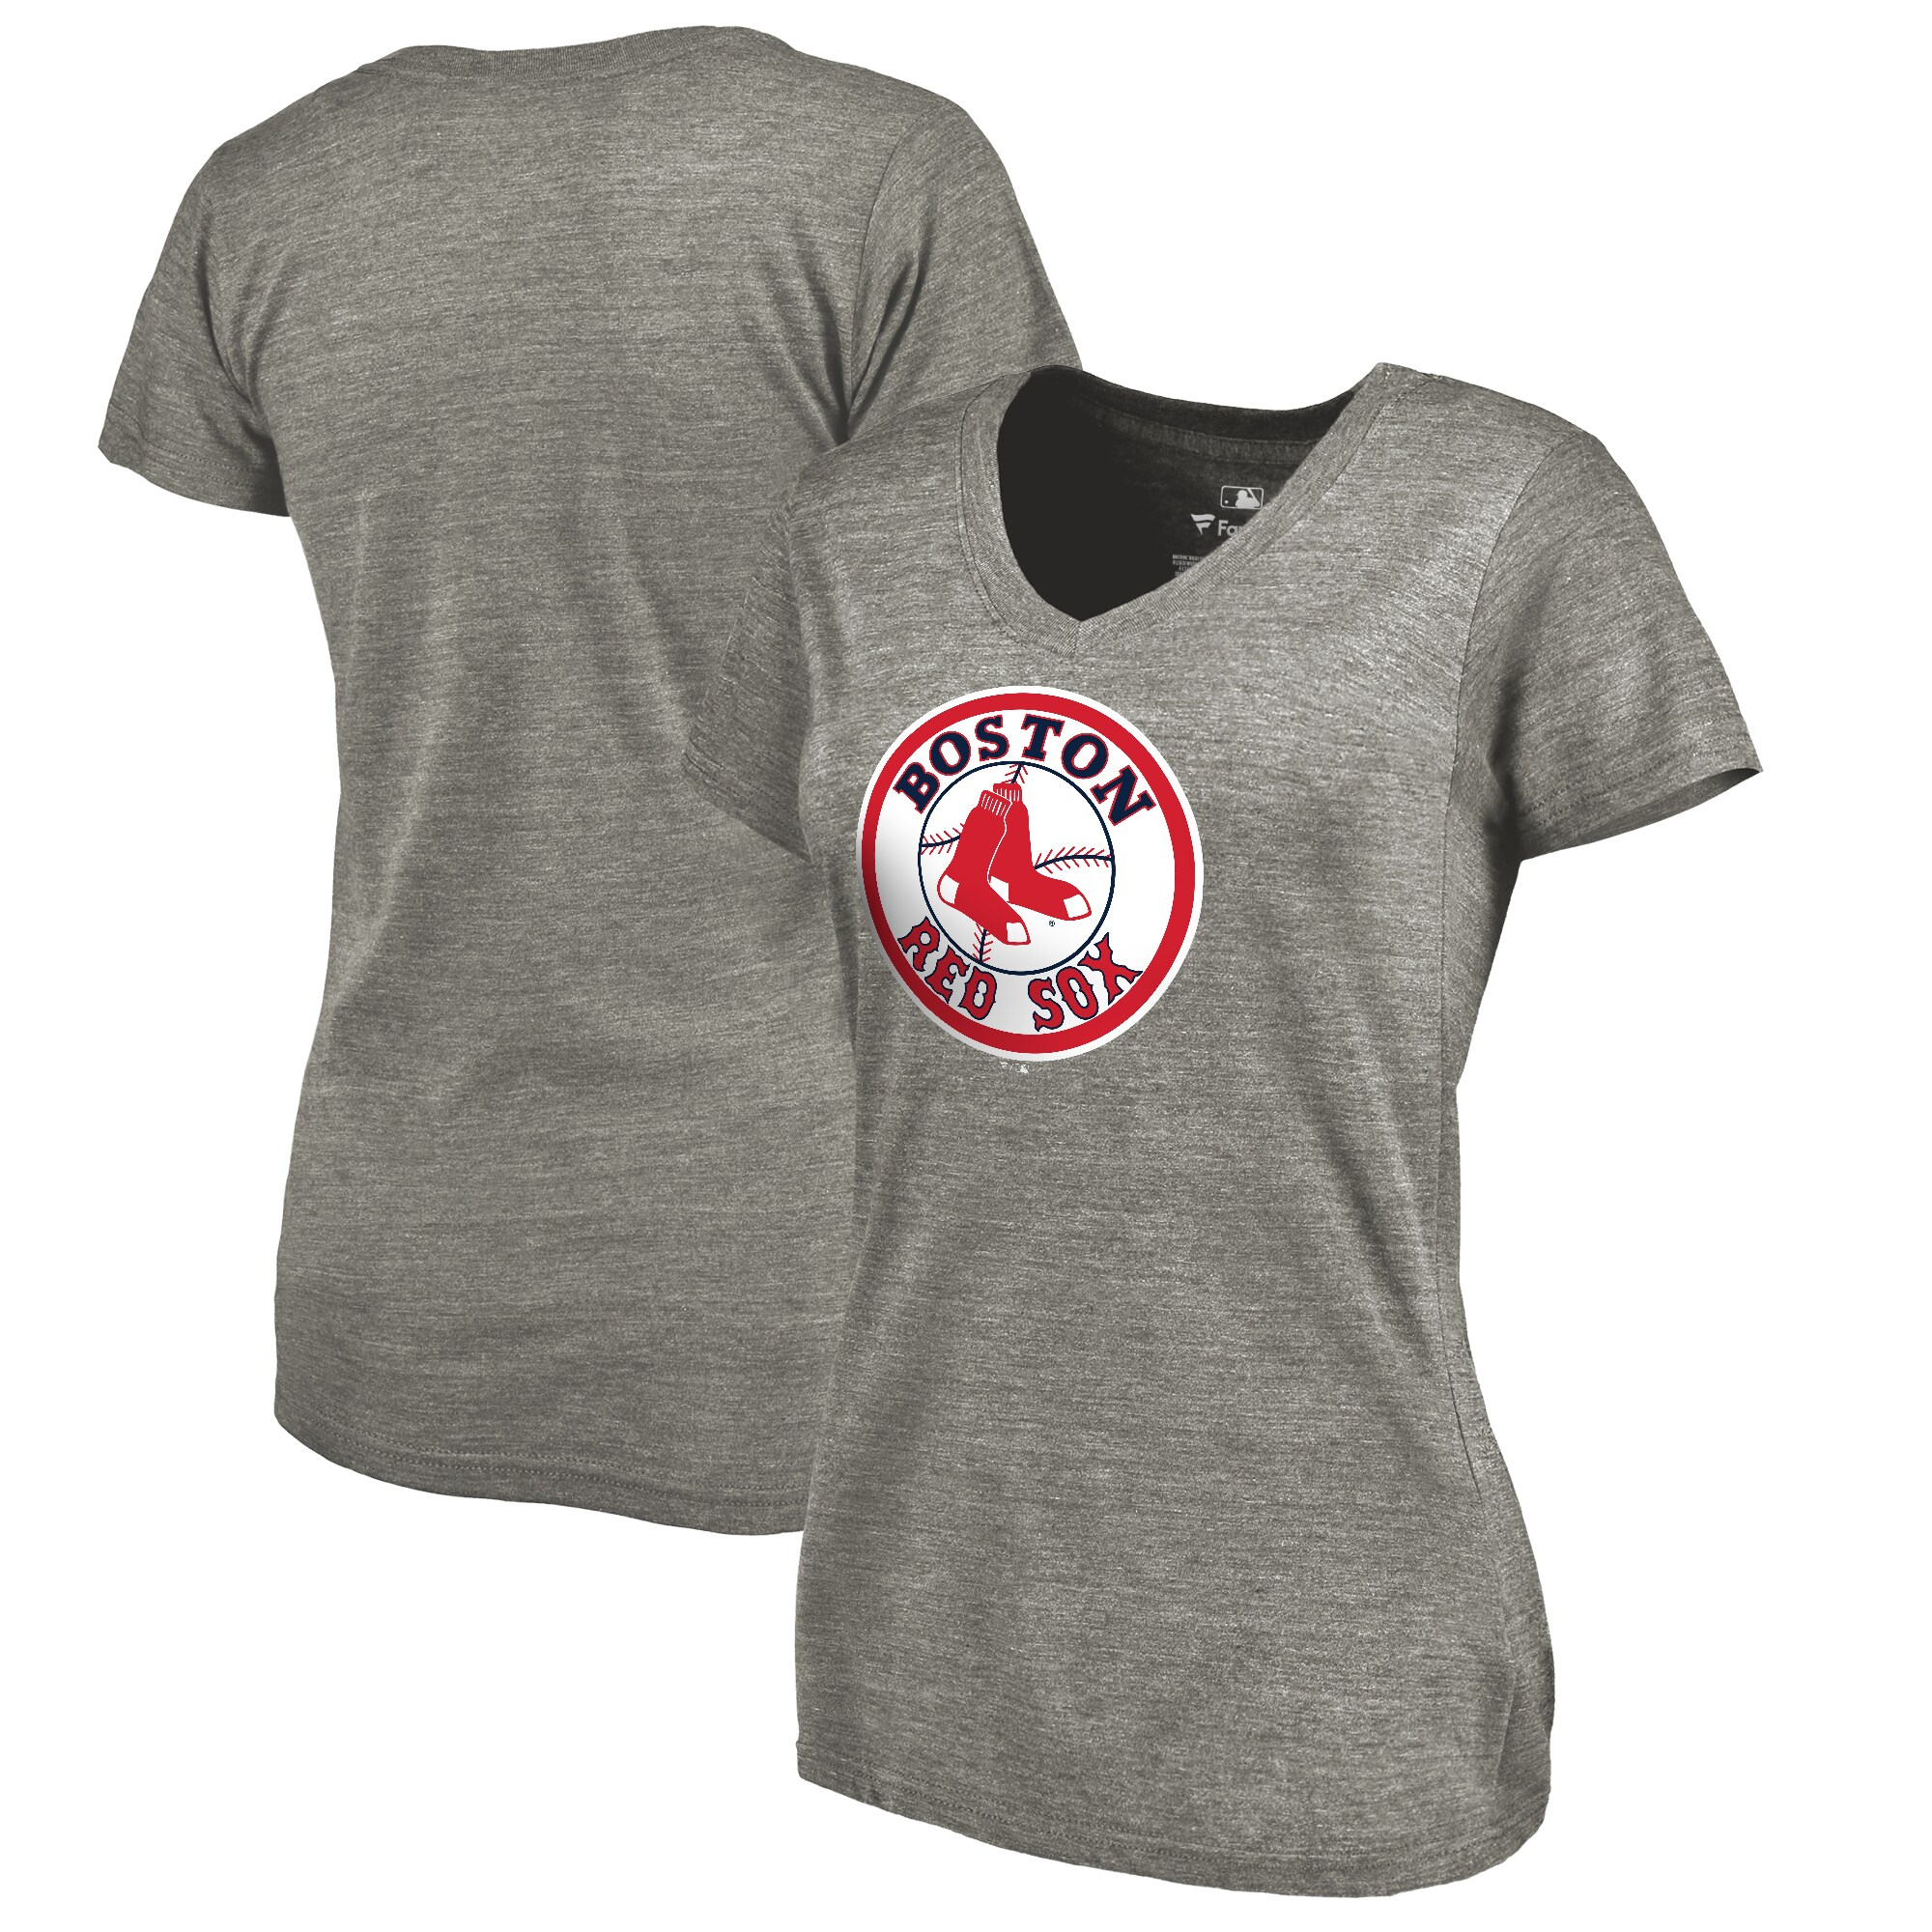 Boston Red Sox Fanatics Branded Women's Cooperstown Collection Forbes Tri-Blend V-Neck T-Shirt - Ash